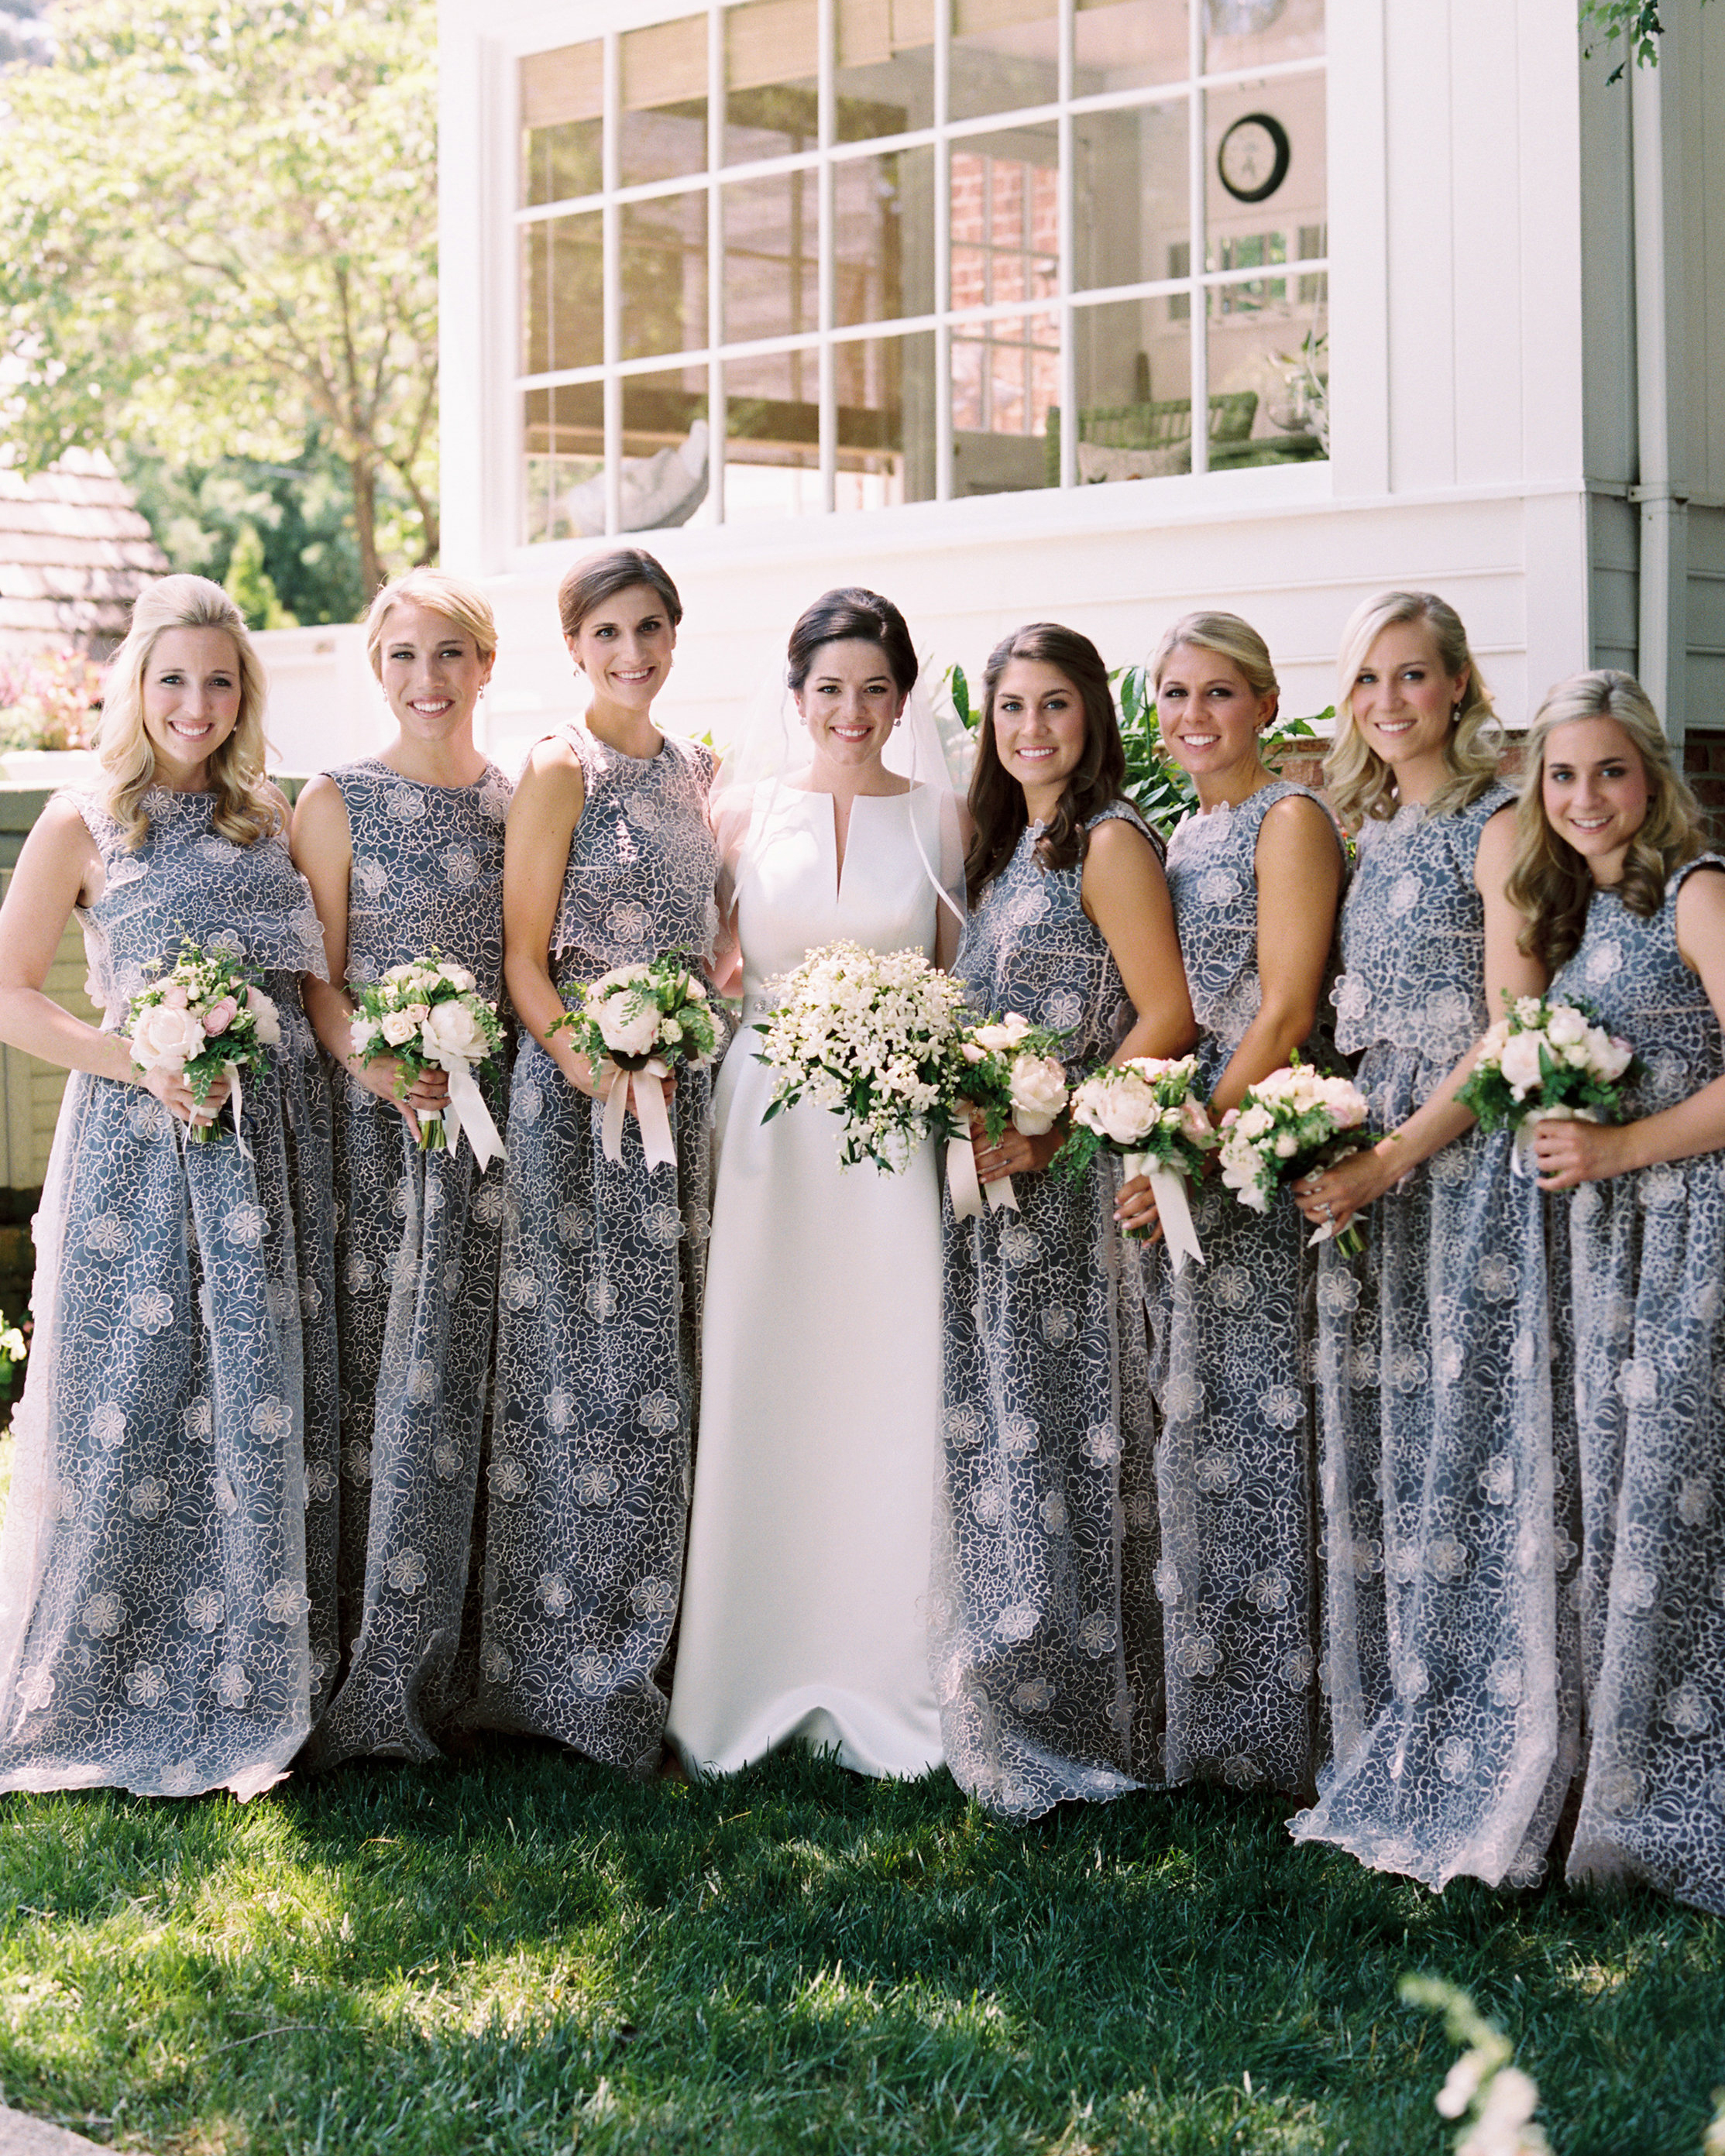 taylor-john-wedding-bridesmaids-60-s112507-0116.jpg